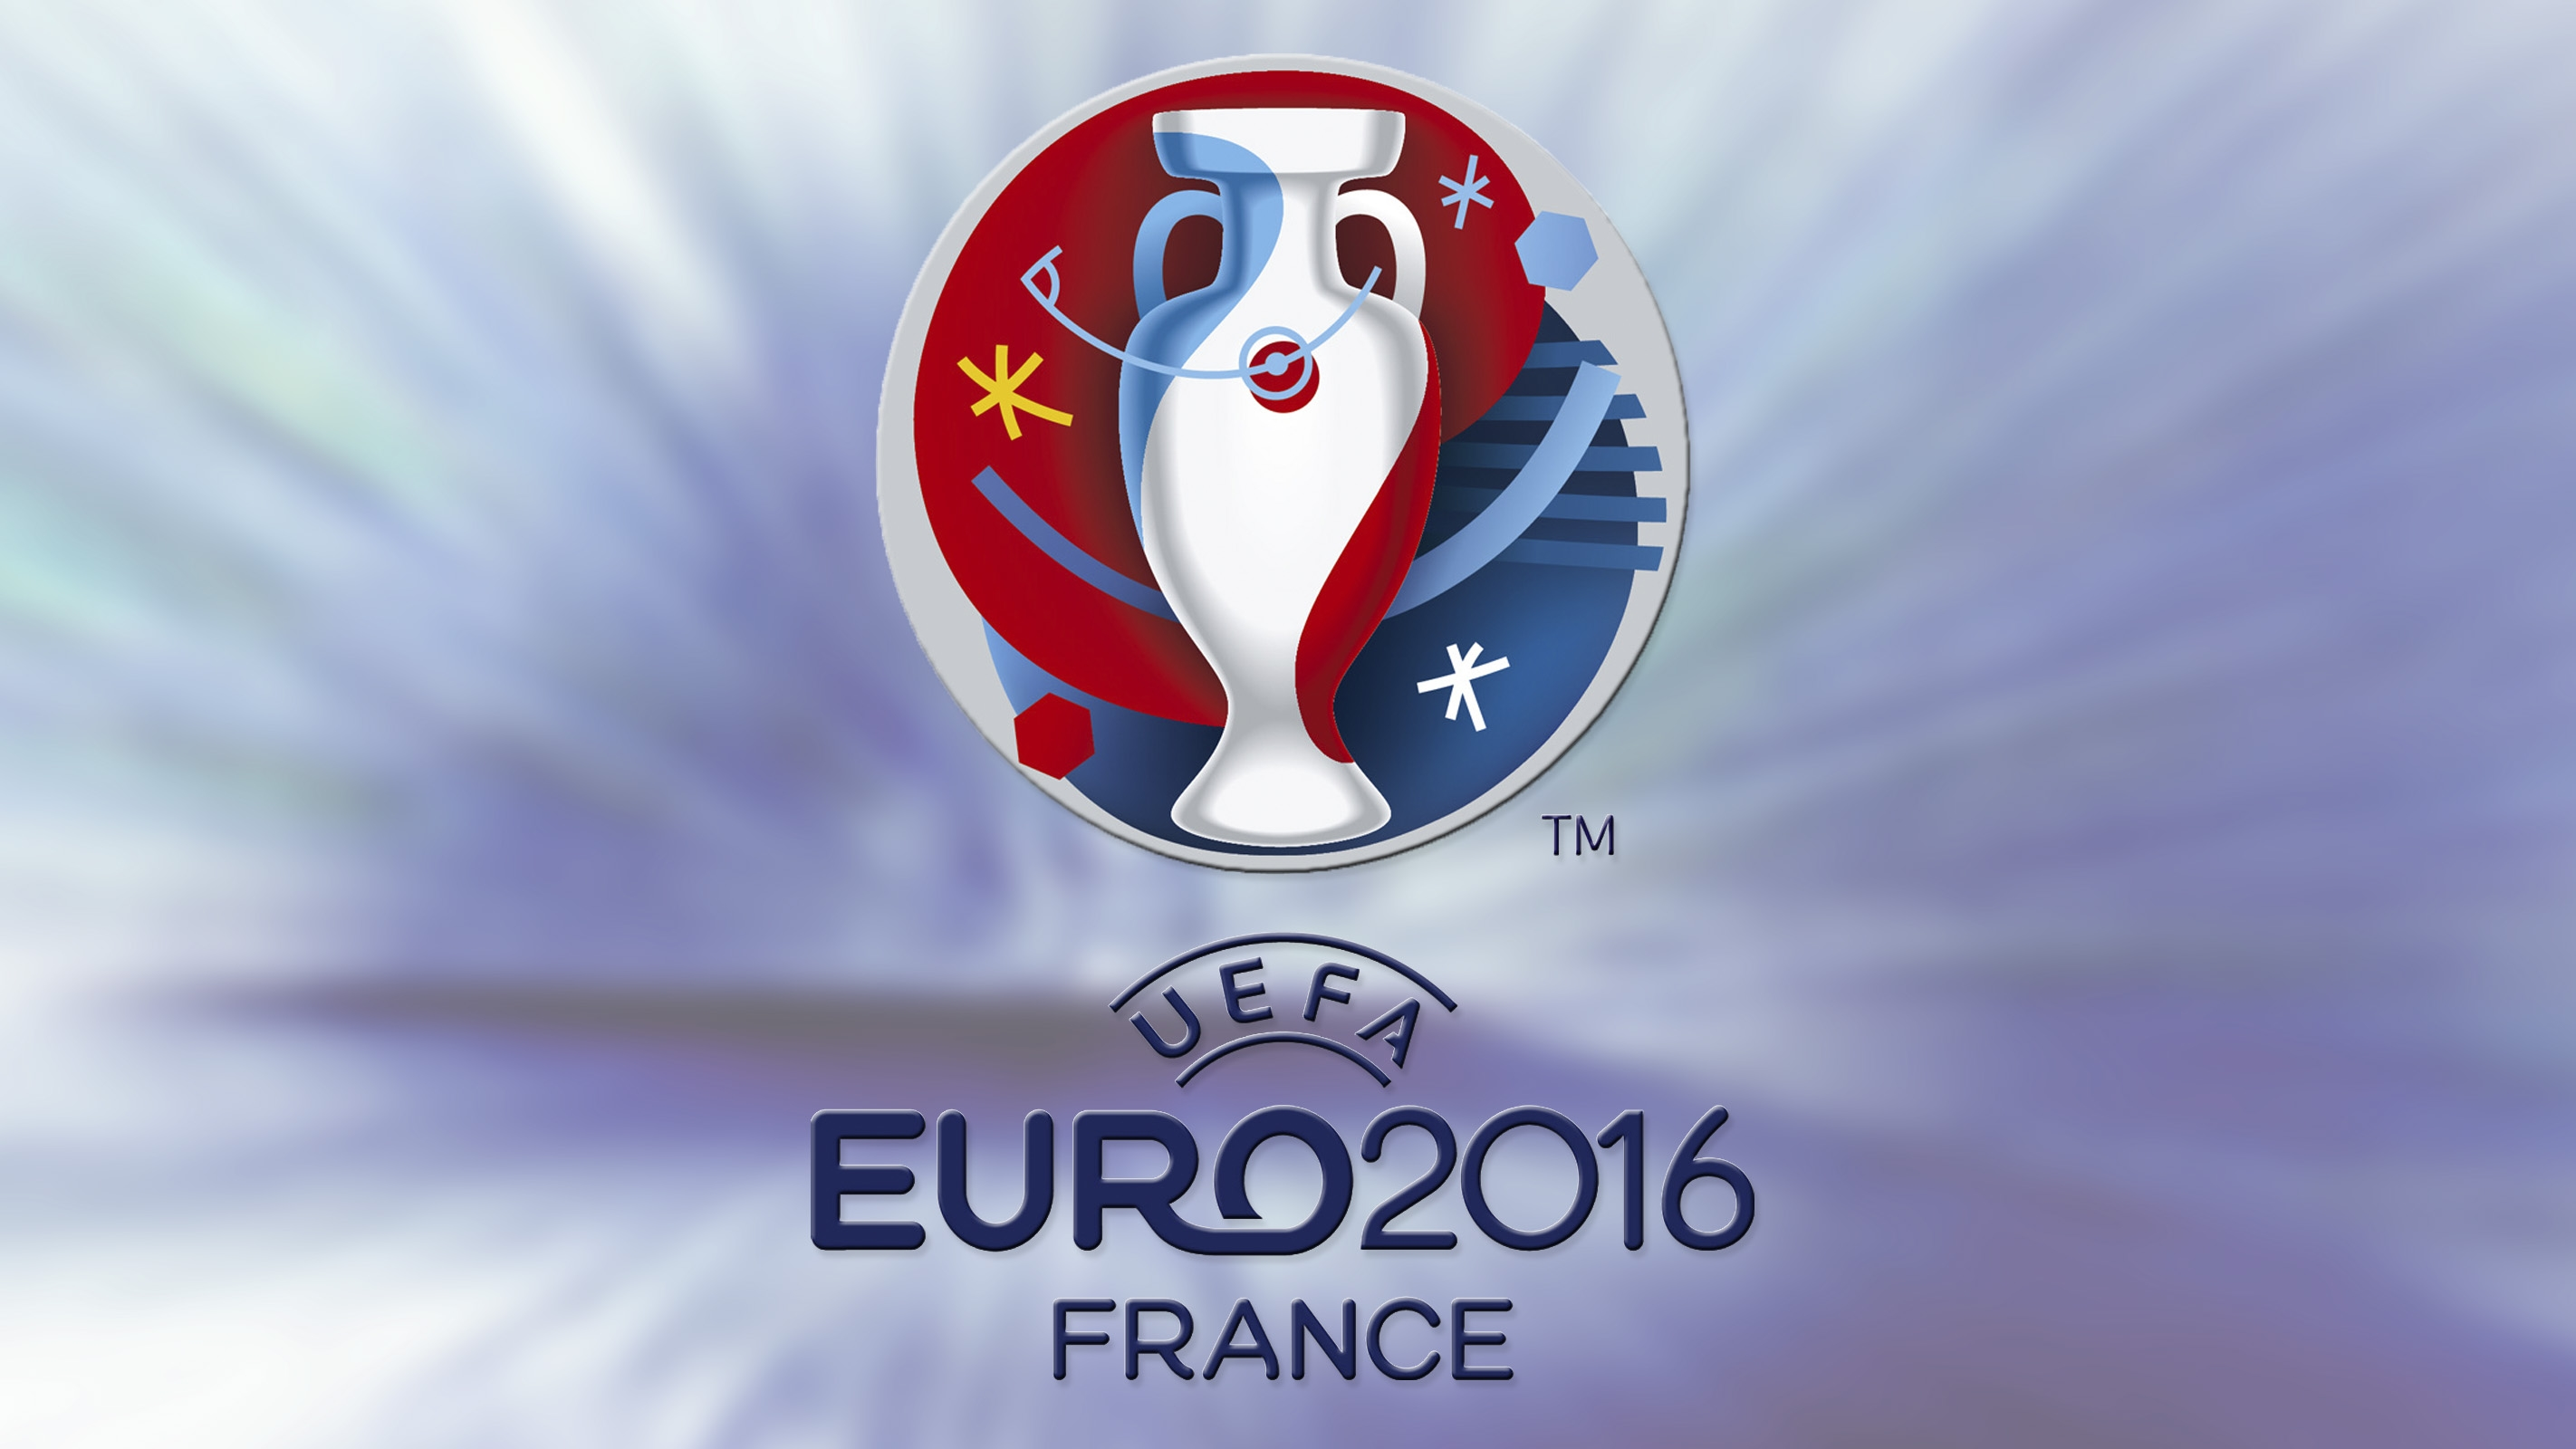 Uefa Euro 2016 Schedule Fixtures List Matches Dates`